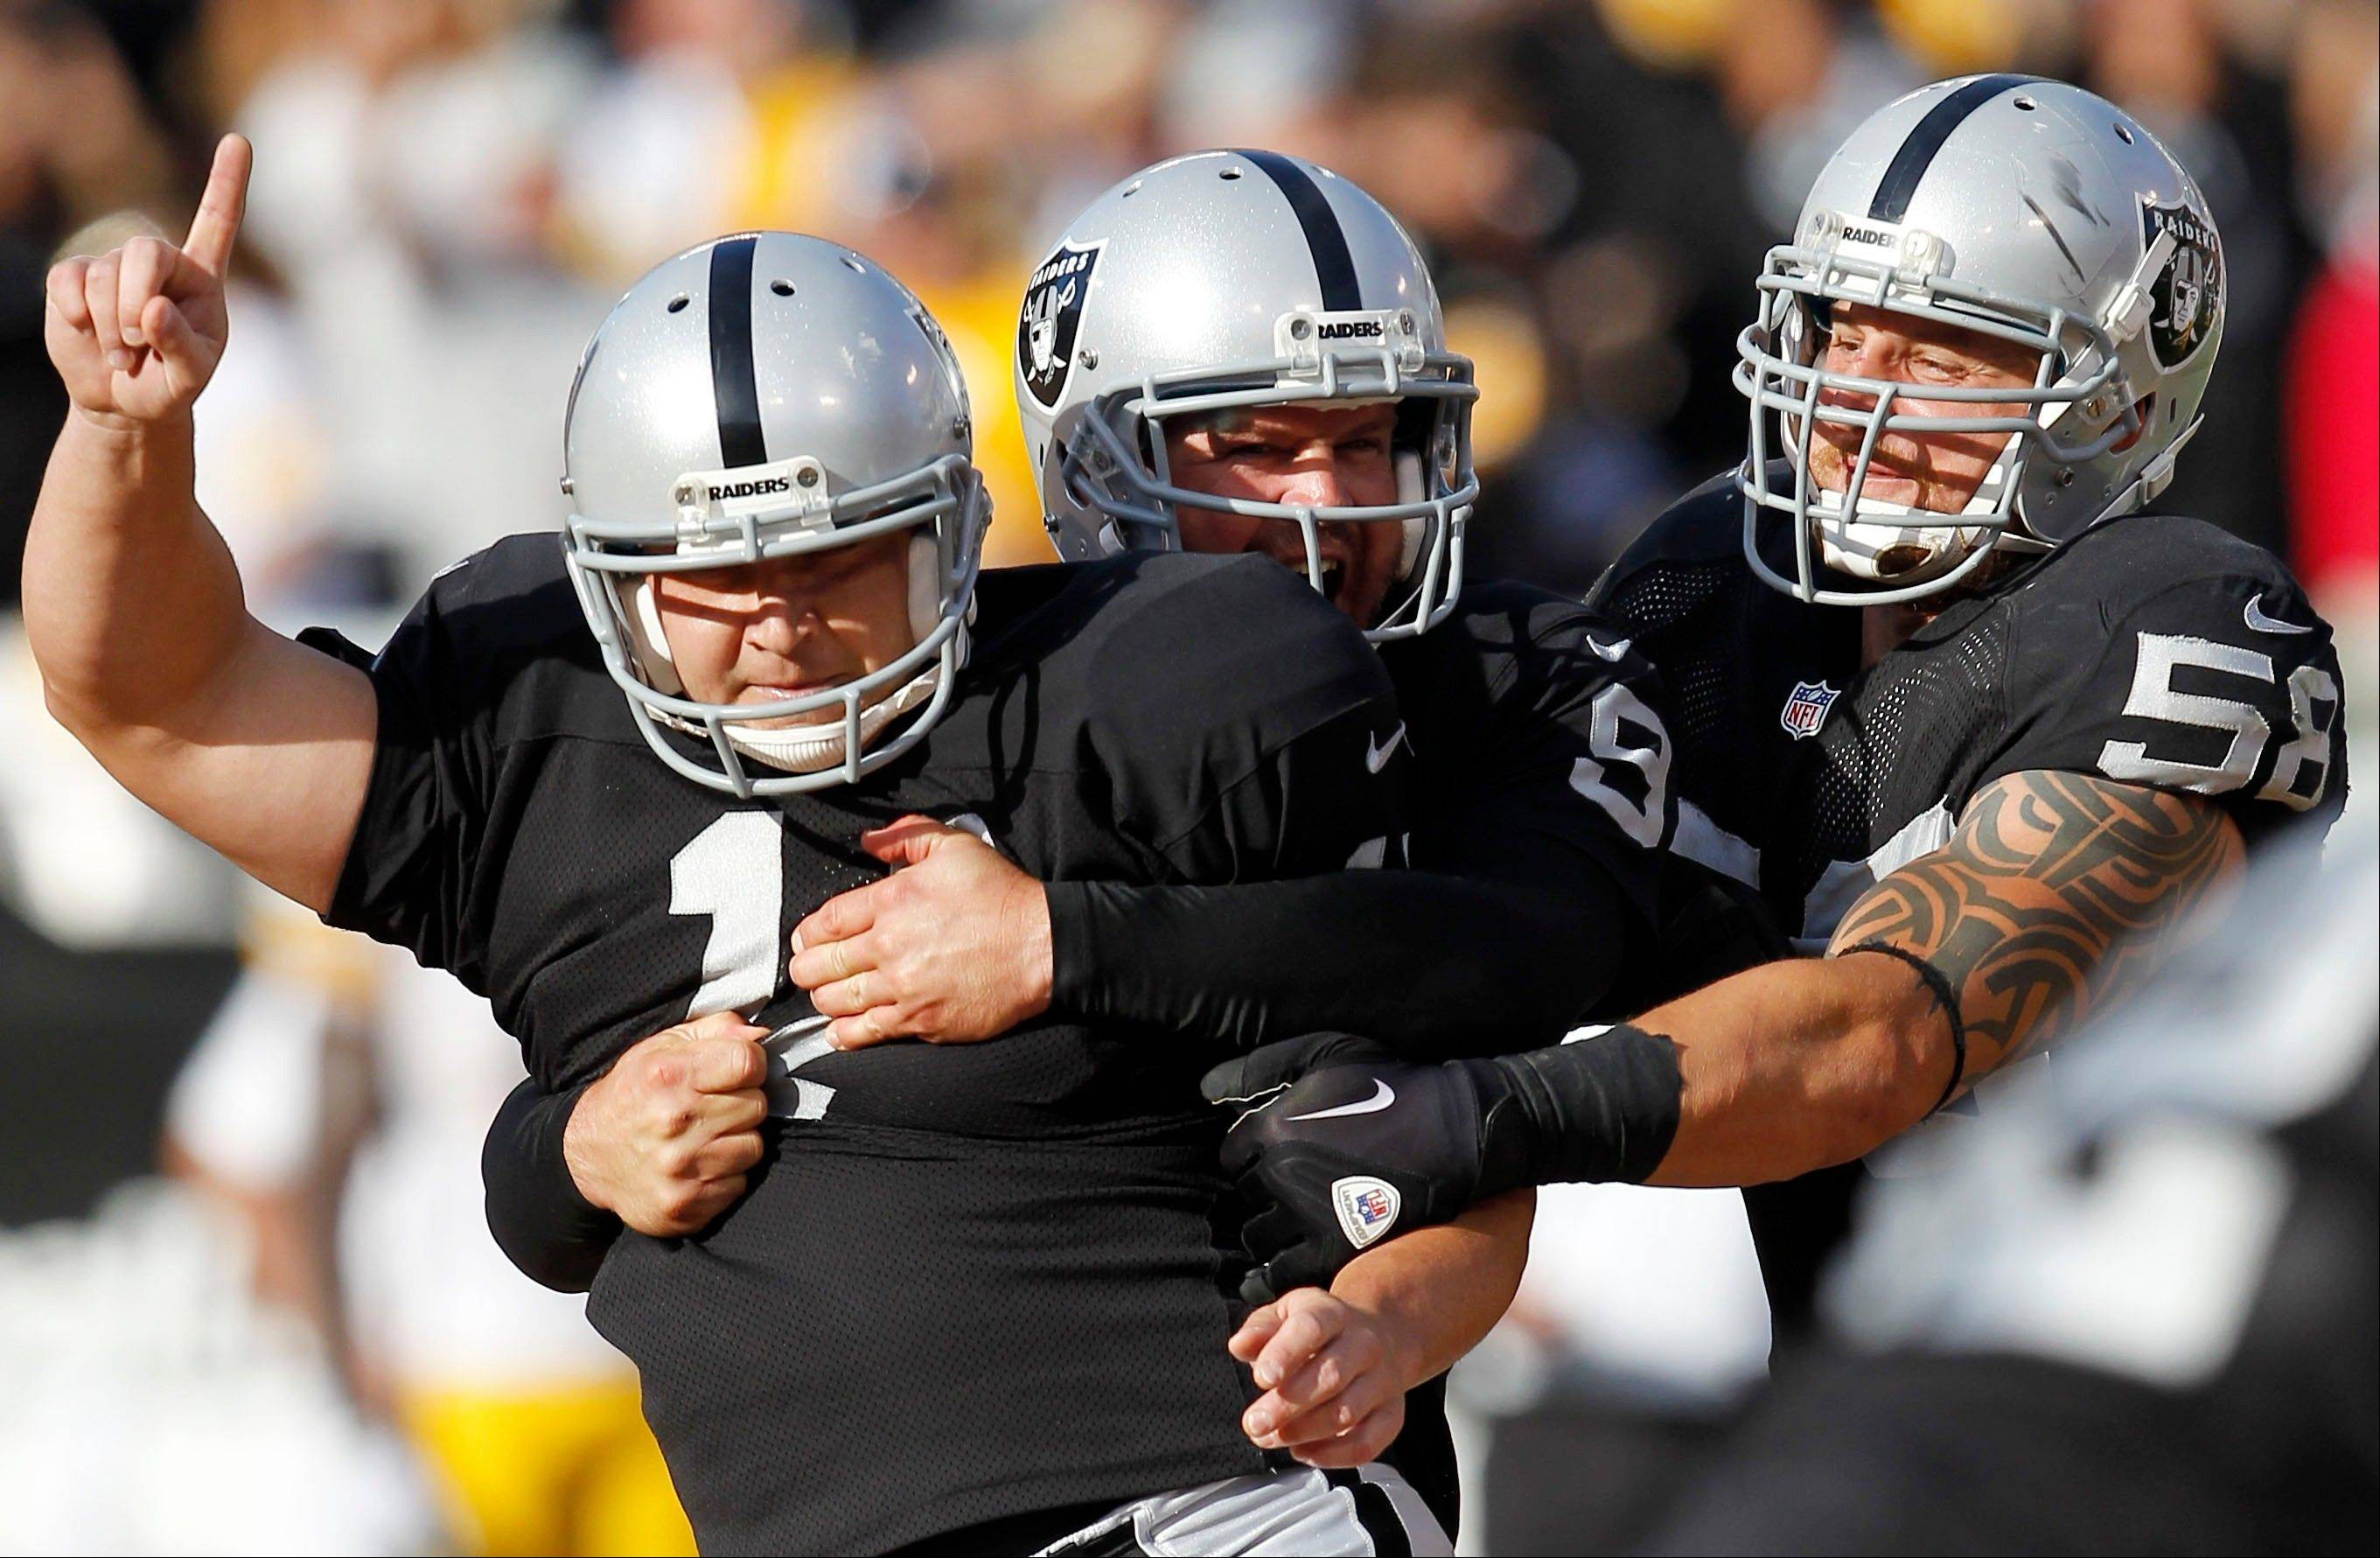 Raiders kicker Sebastian Janikowski (11) celebrates with holder Shane Lechler (9) and Dave Tollefson (58) after Janikowski's 43-yard field goal to win the game against the Pittsburgh Steelers on Sunday in Oakland, Calif.